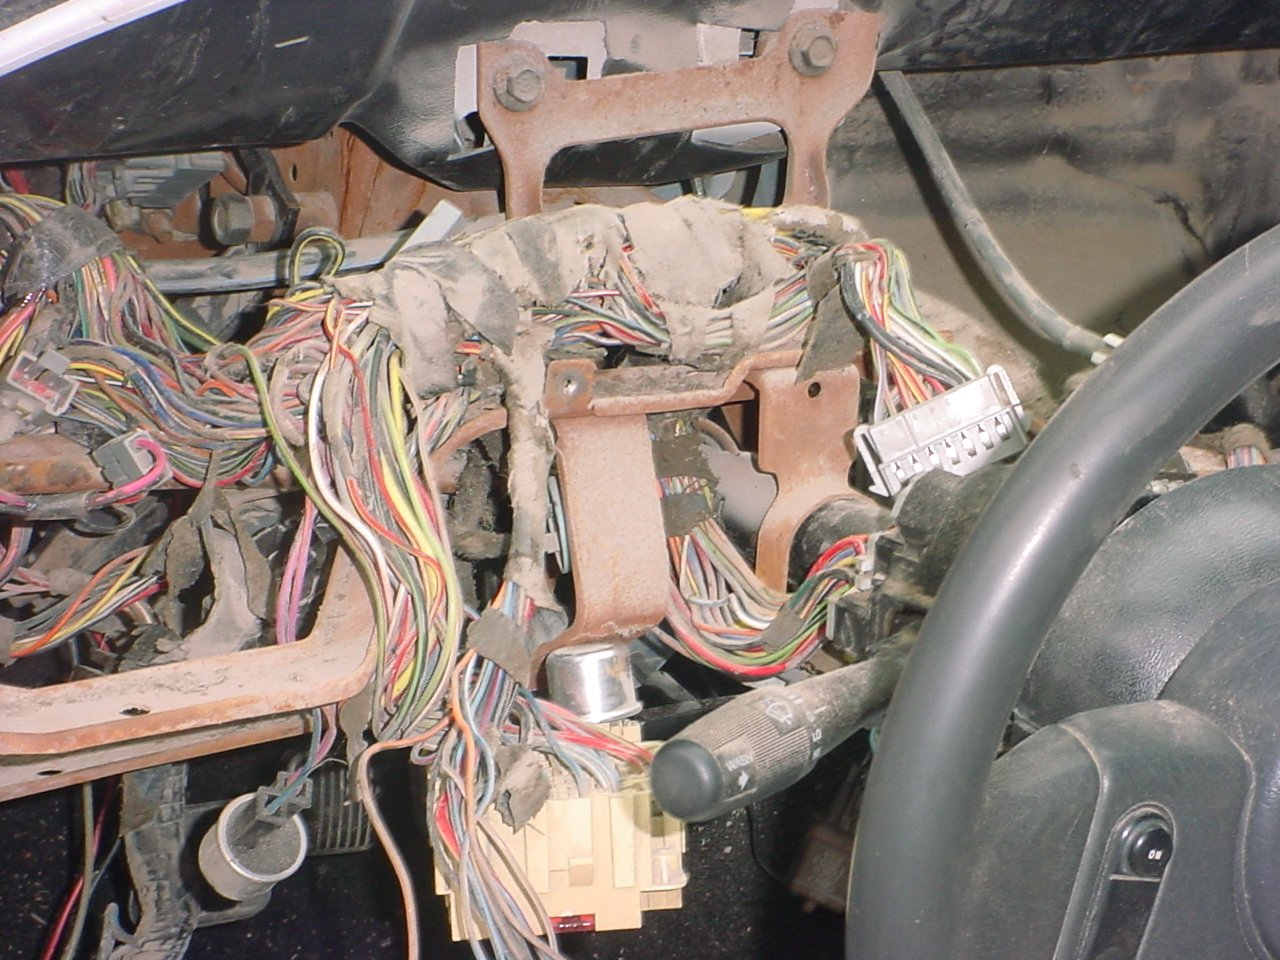 12808d1134269196 underdash wiring diagram dsc01663 underdash wiring diagram ford mustang forum 1968 mustang steering column wiring diagram at readyjetset.co